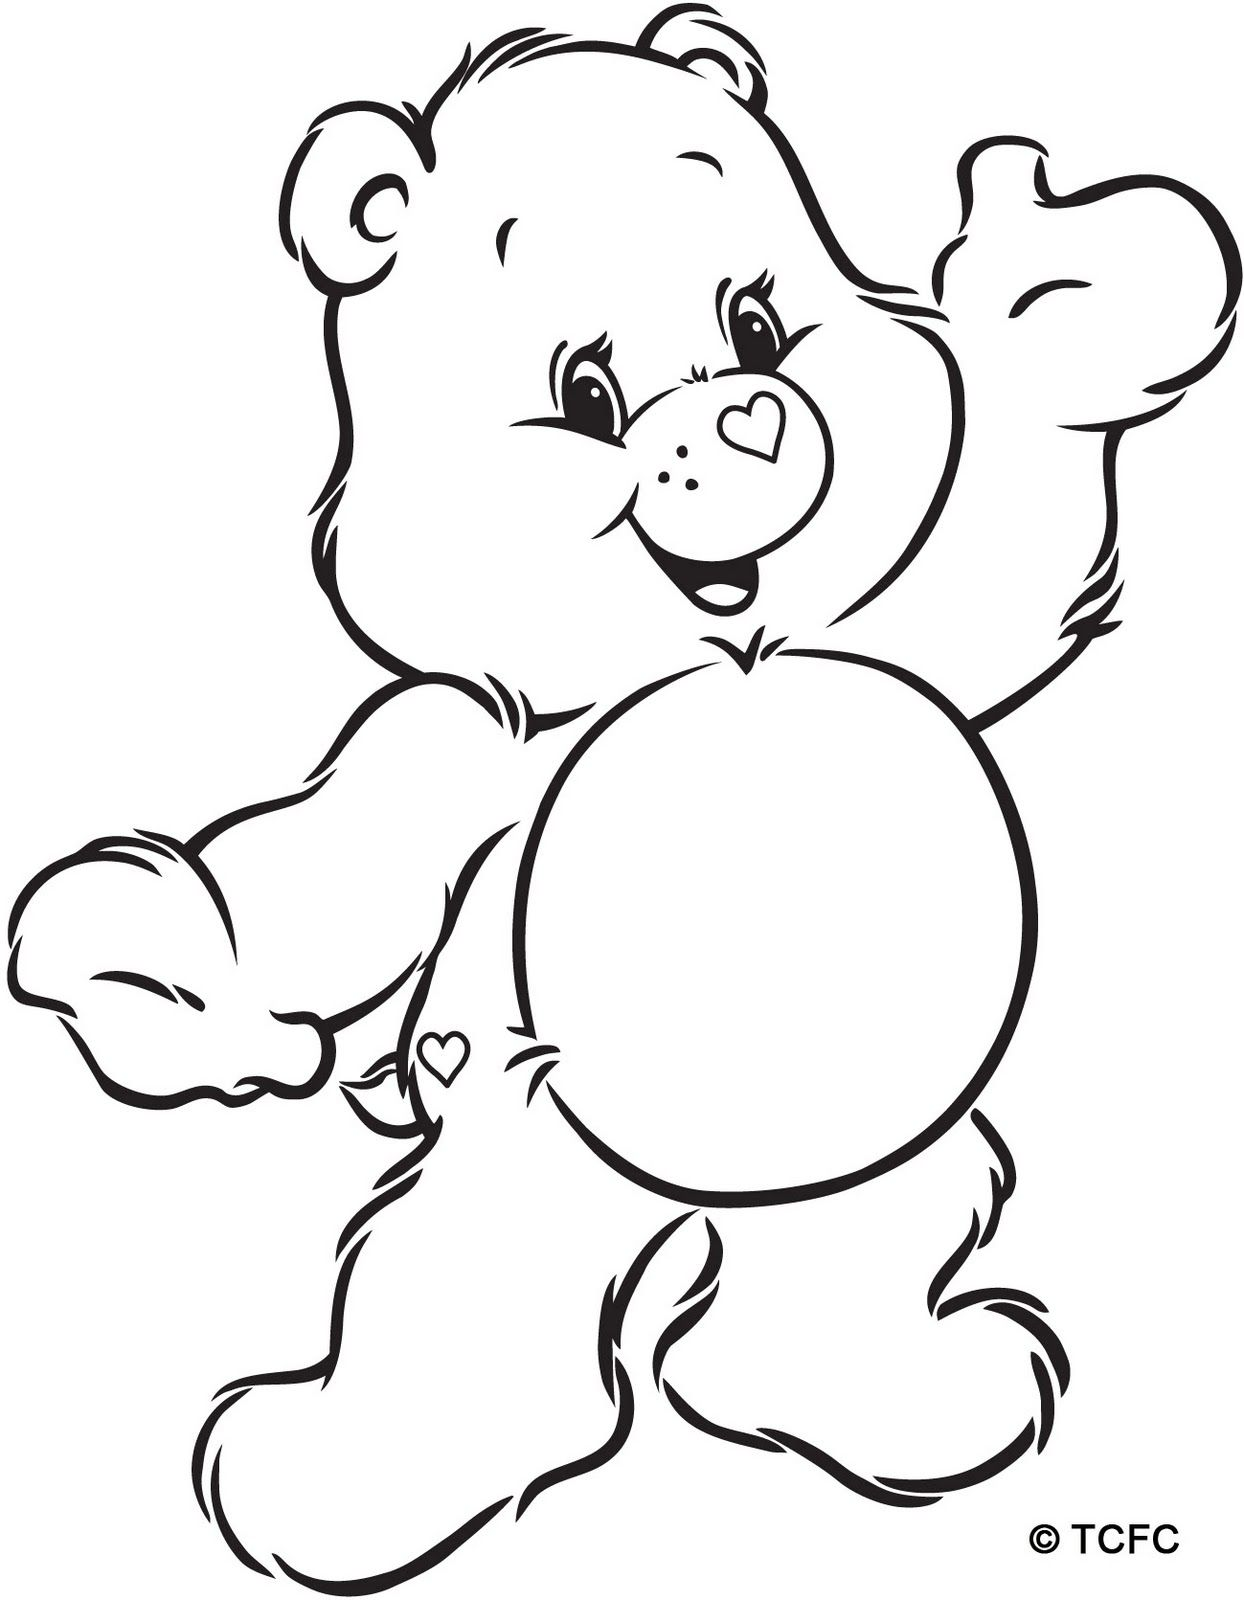 Design Your Own Care Bear  Geburtstag malvorlagen, Disney